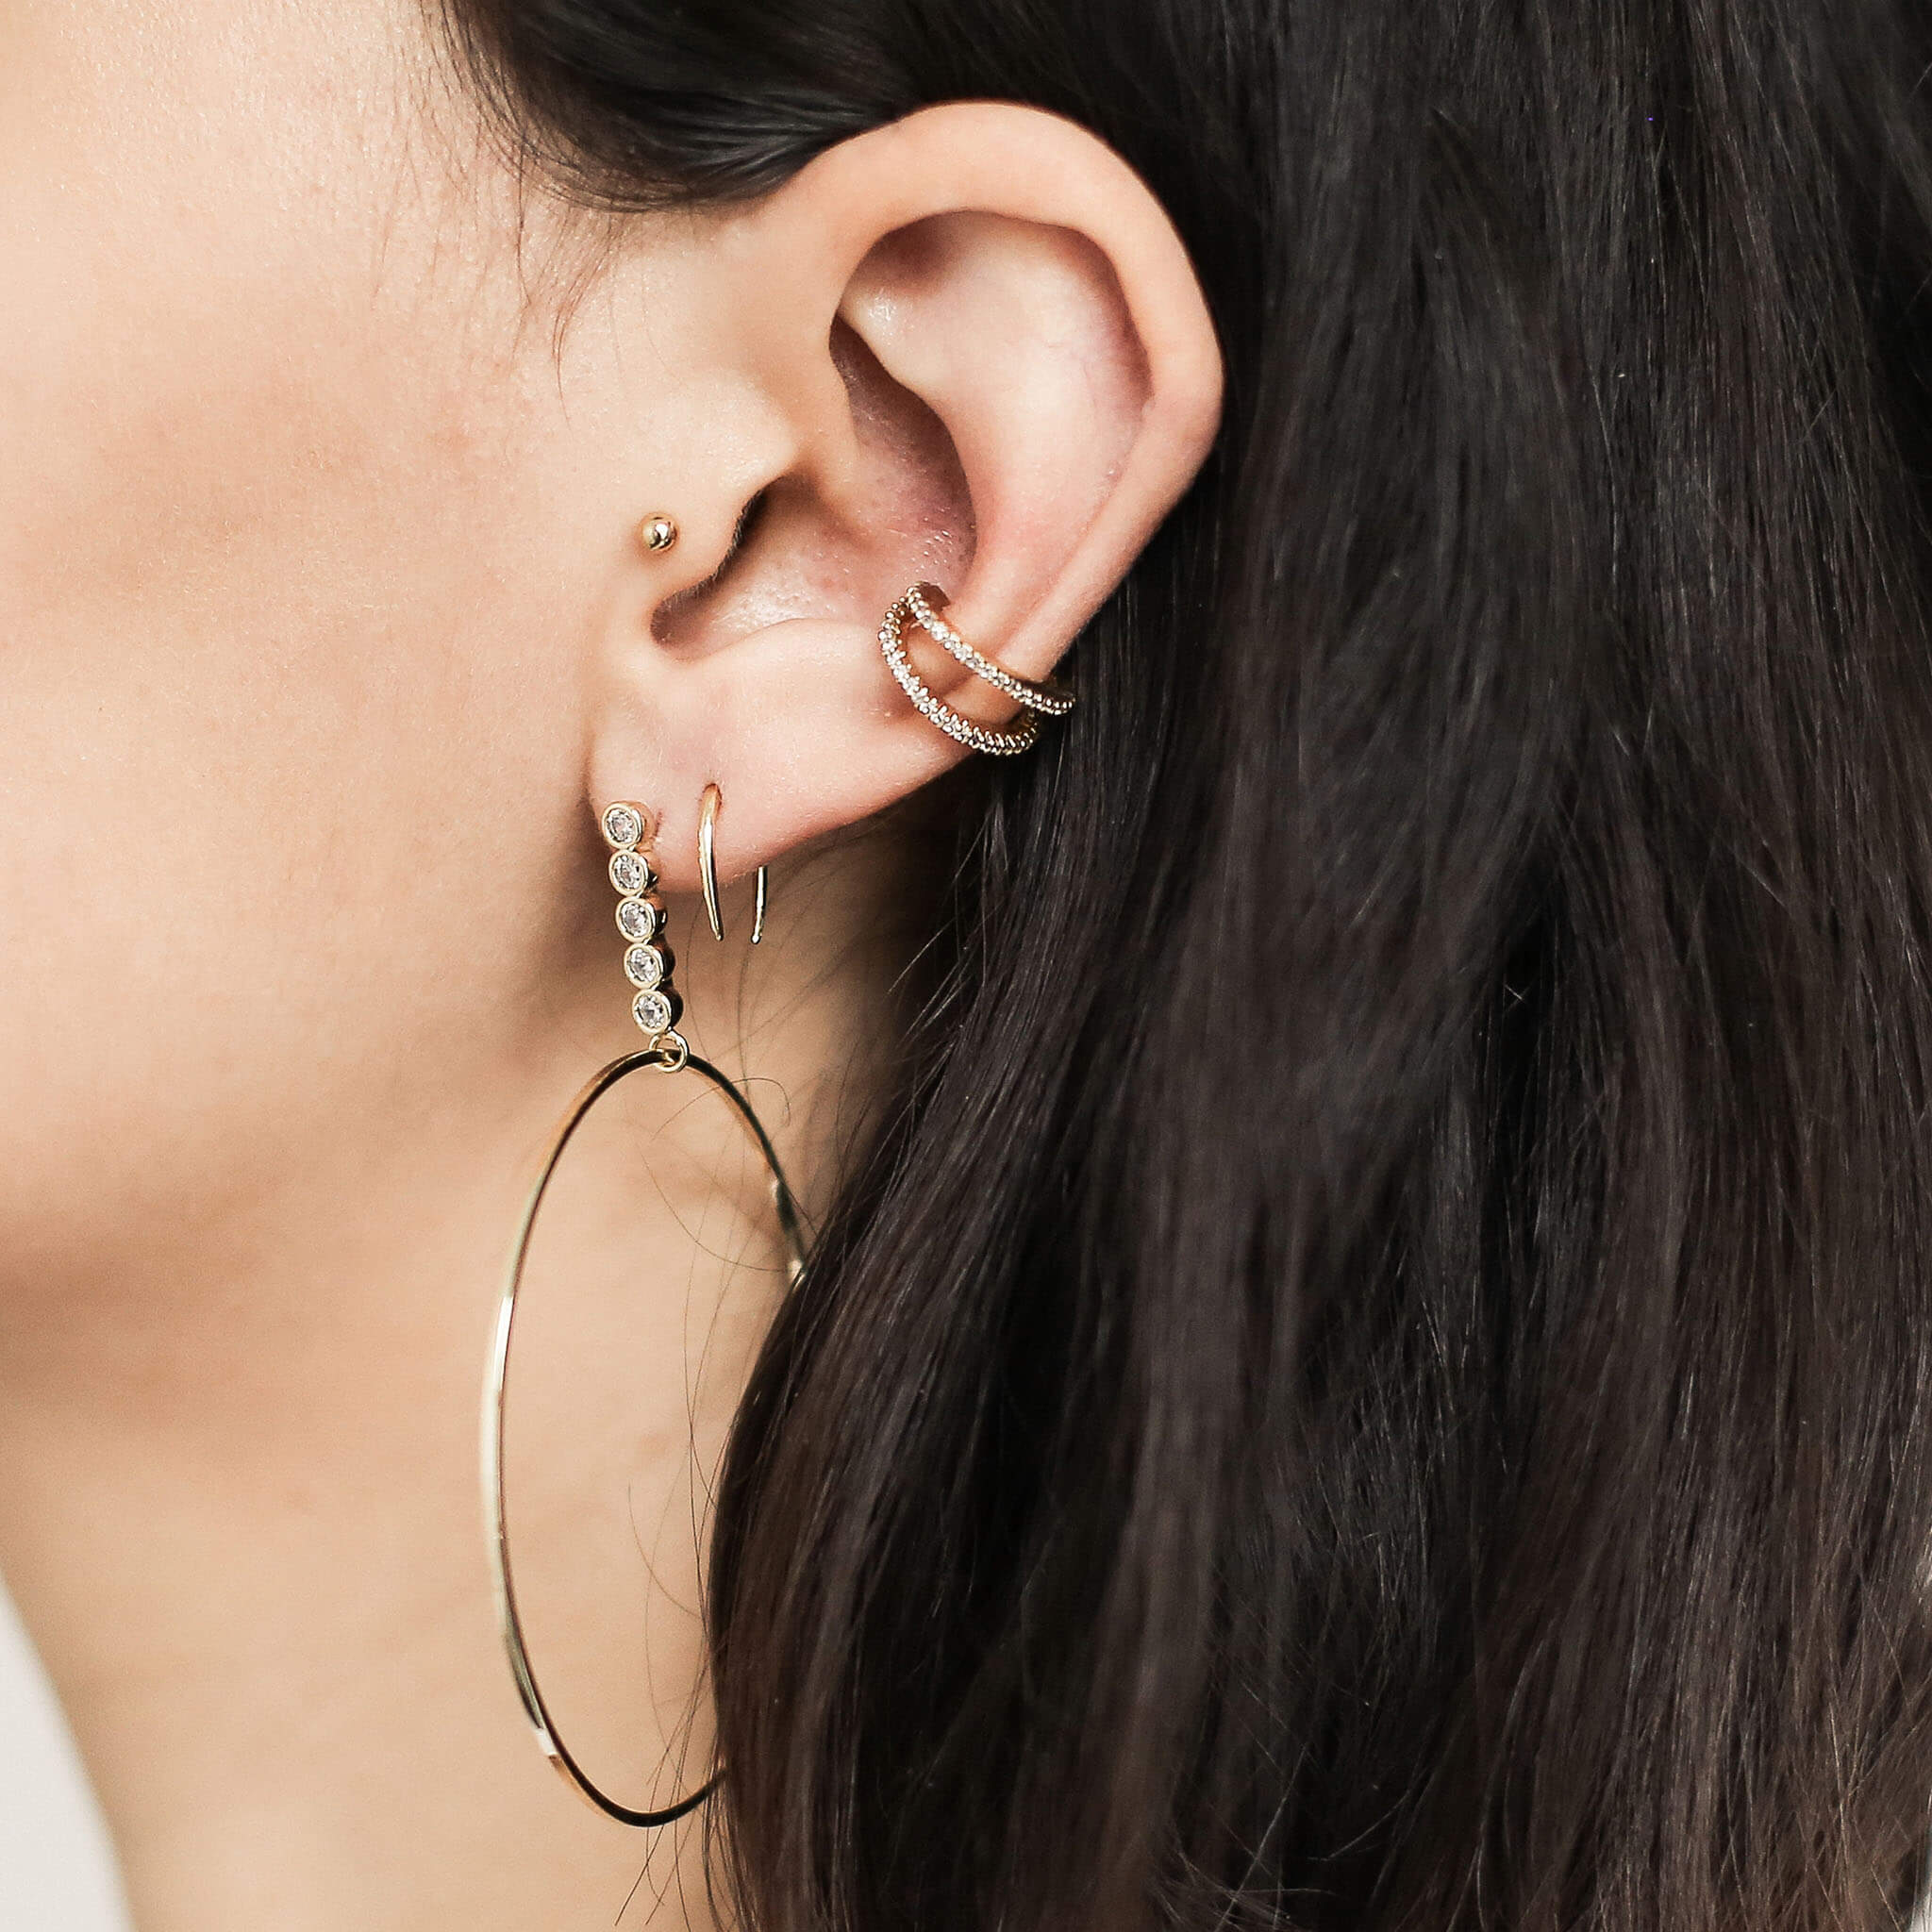 Little Sphere Push Pin Flat Back Earring in Gold on model